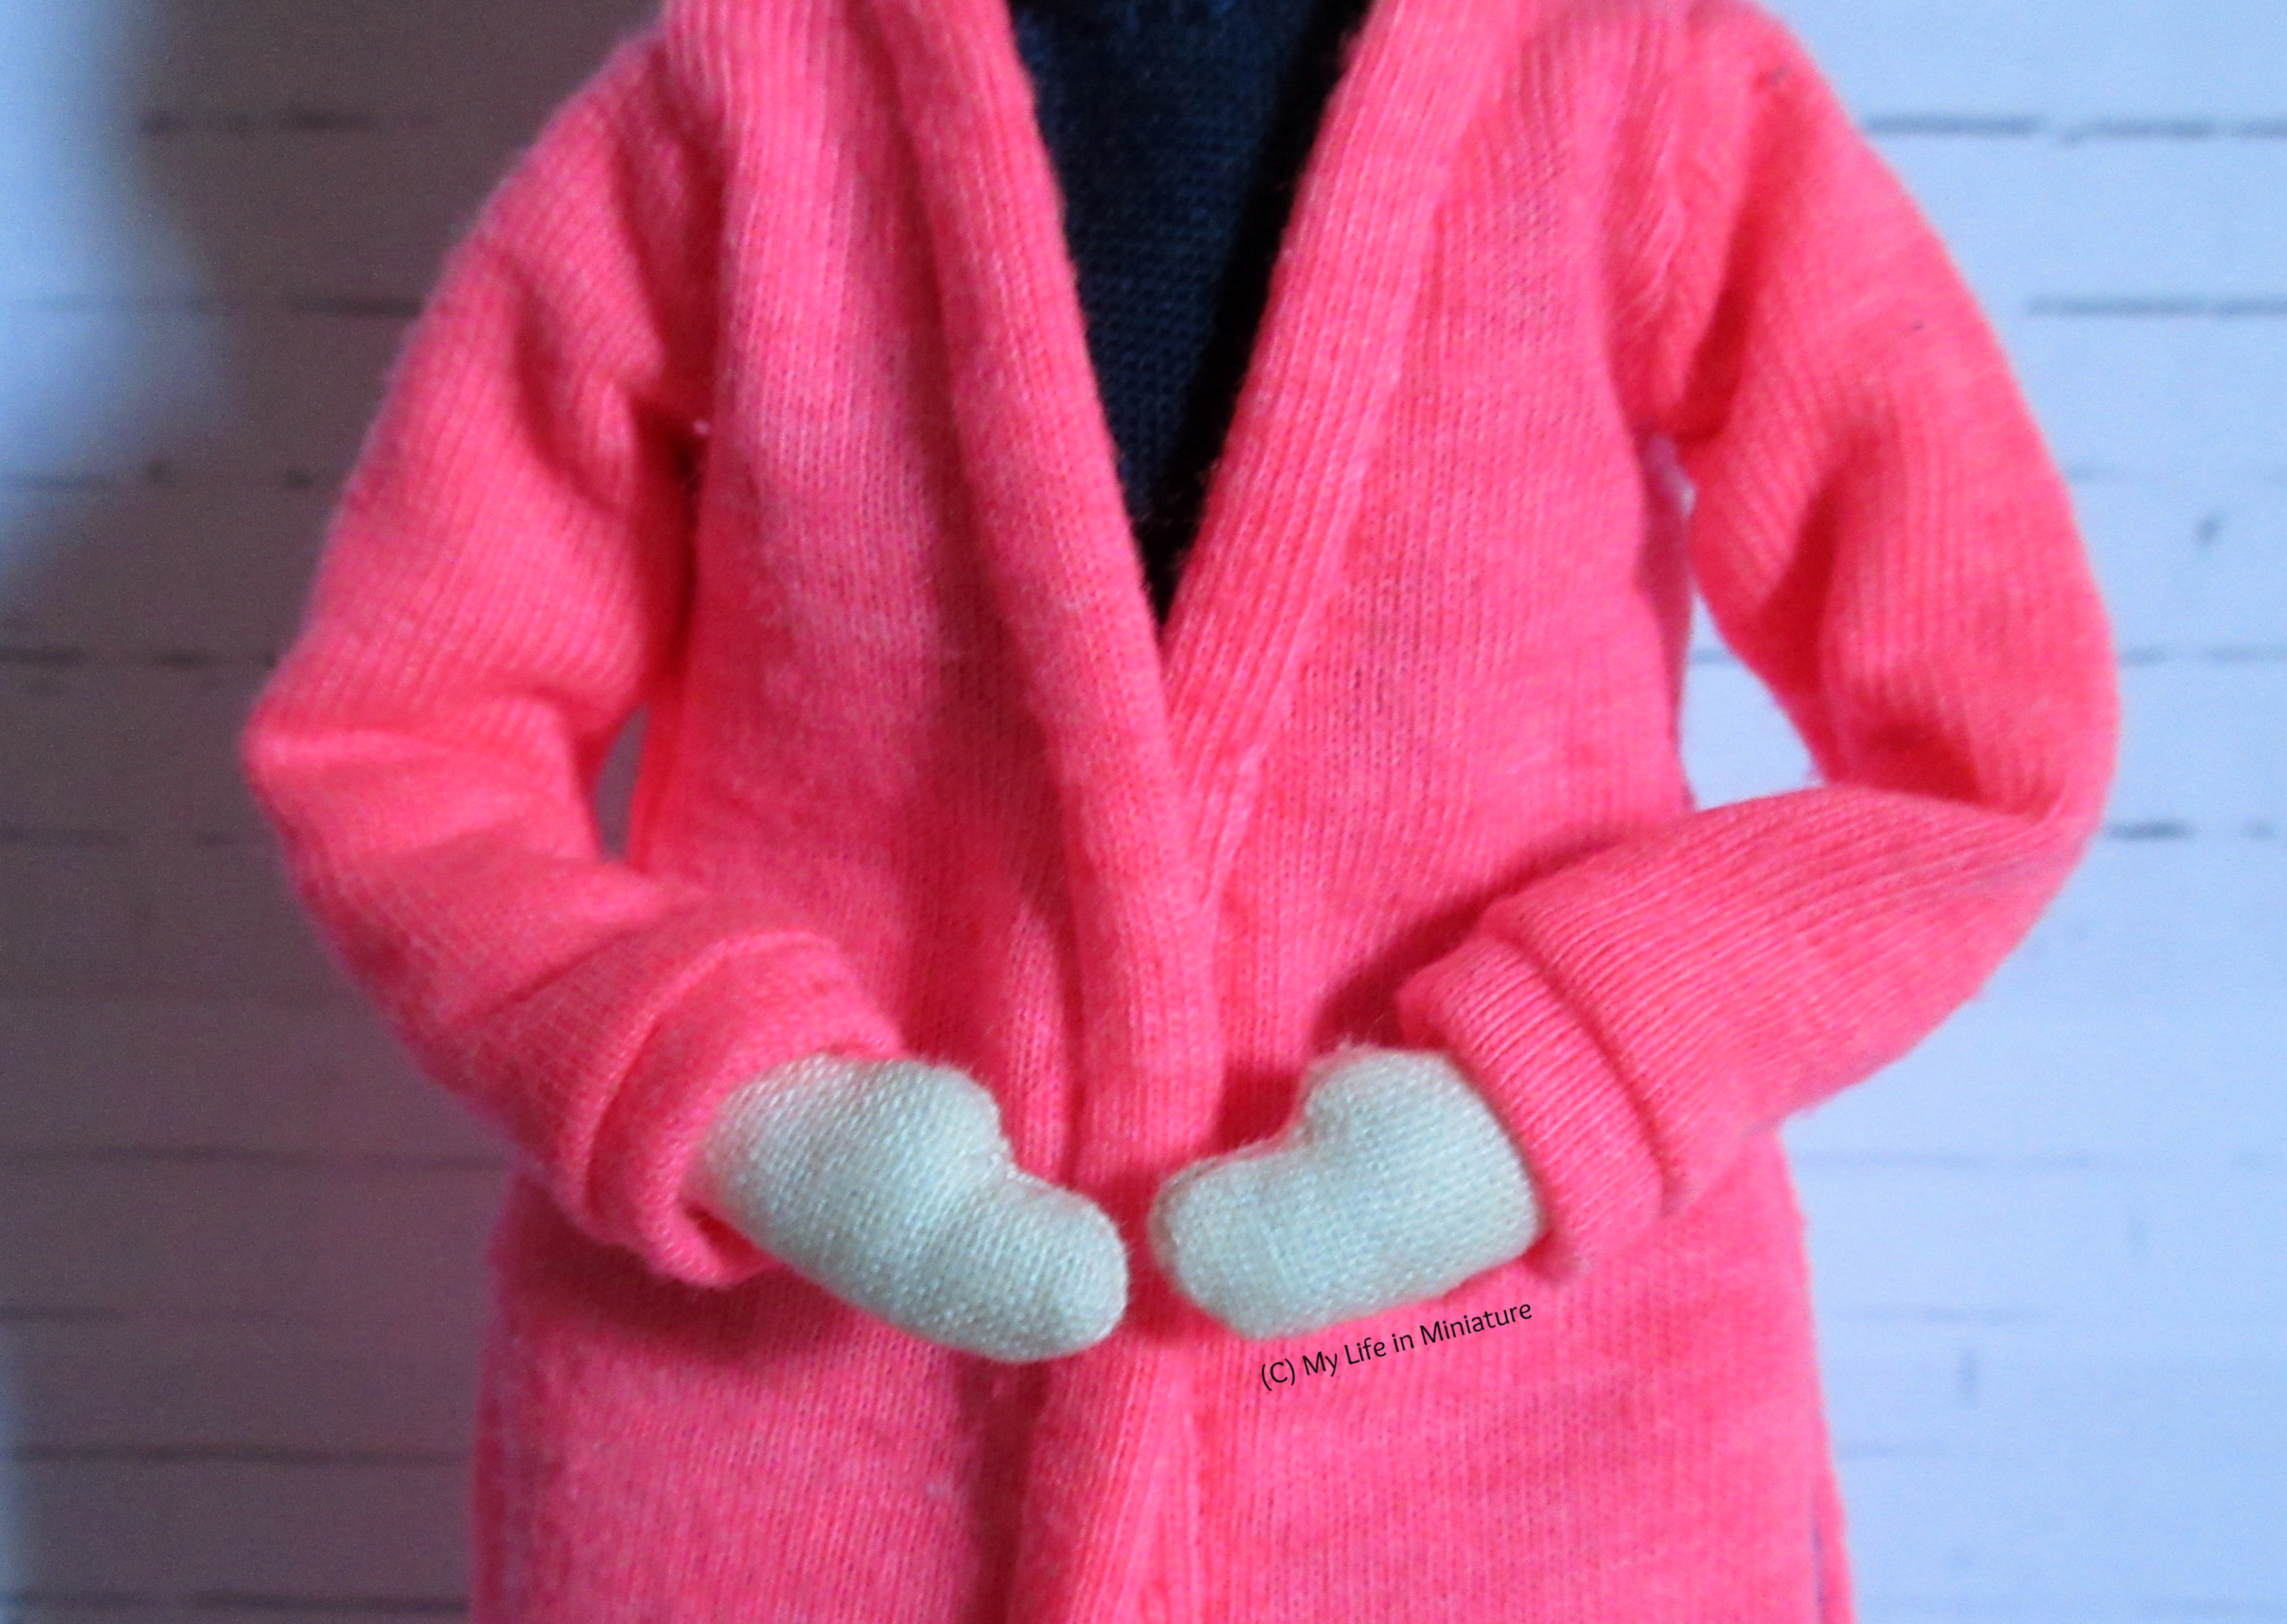 Tiffany wears the neon pink cardigan, her hands held in front of her. The cuffs of her sleeves are visible, as well as the binding around the front opening.